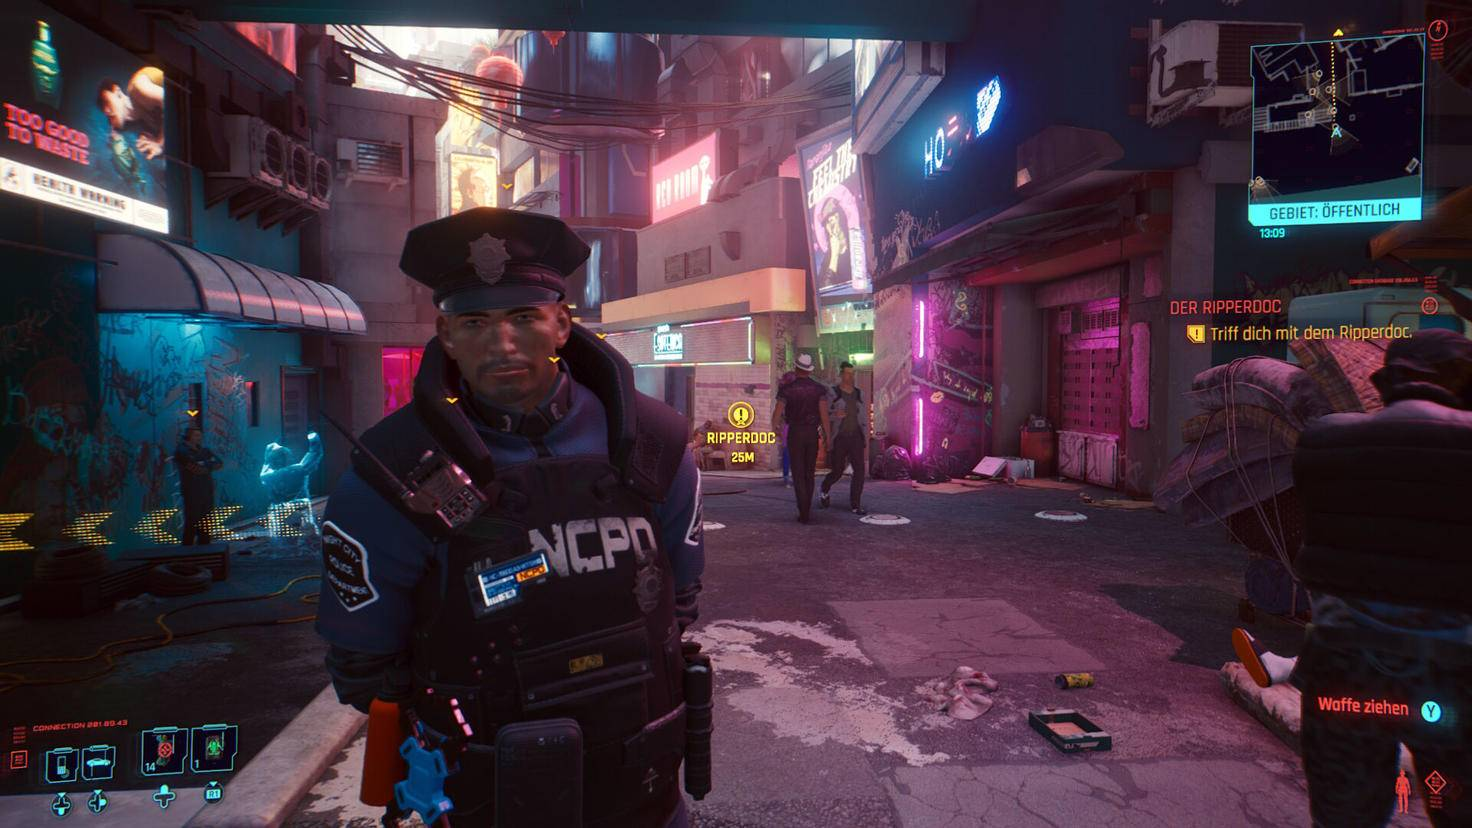 cyberpunk-2077-stadia-screenshot-03